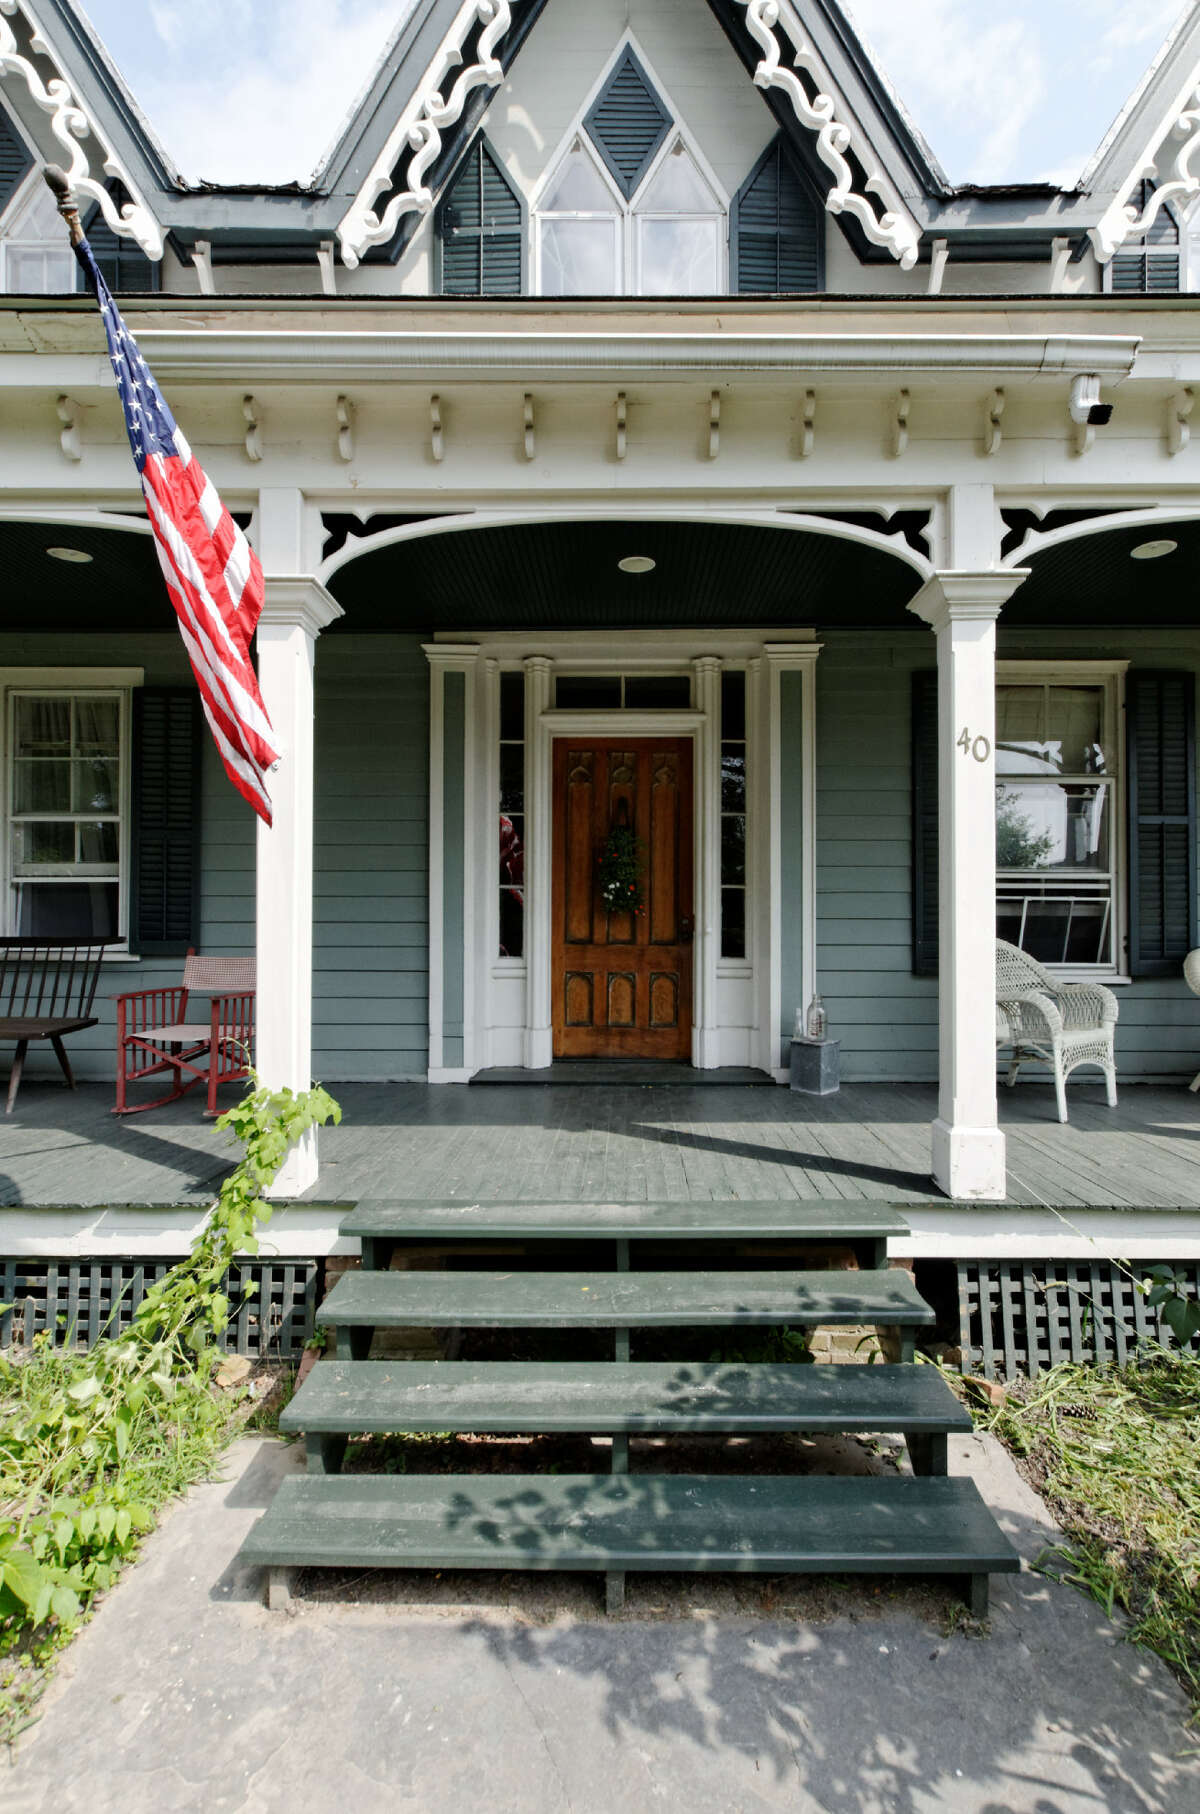 House of the Week: 40 Church St., Coeymans | Realtor: Christopher Culihan at Coldwell Banker Prime Properties | Discuss: Talk about this house